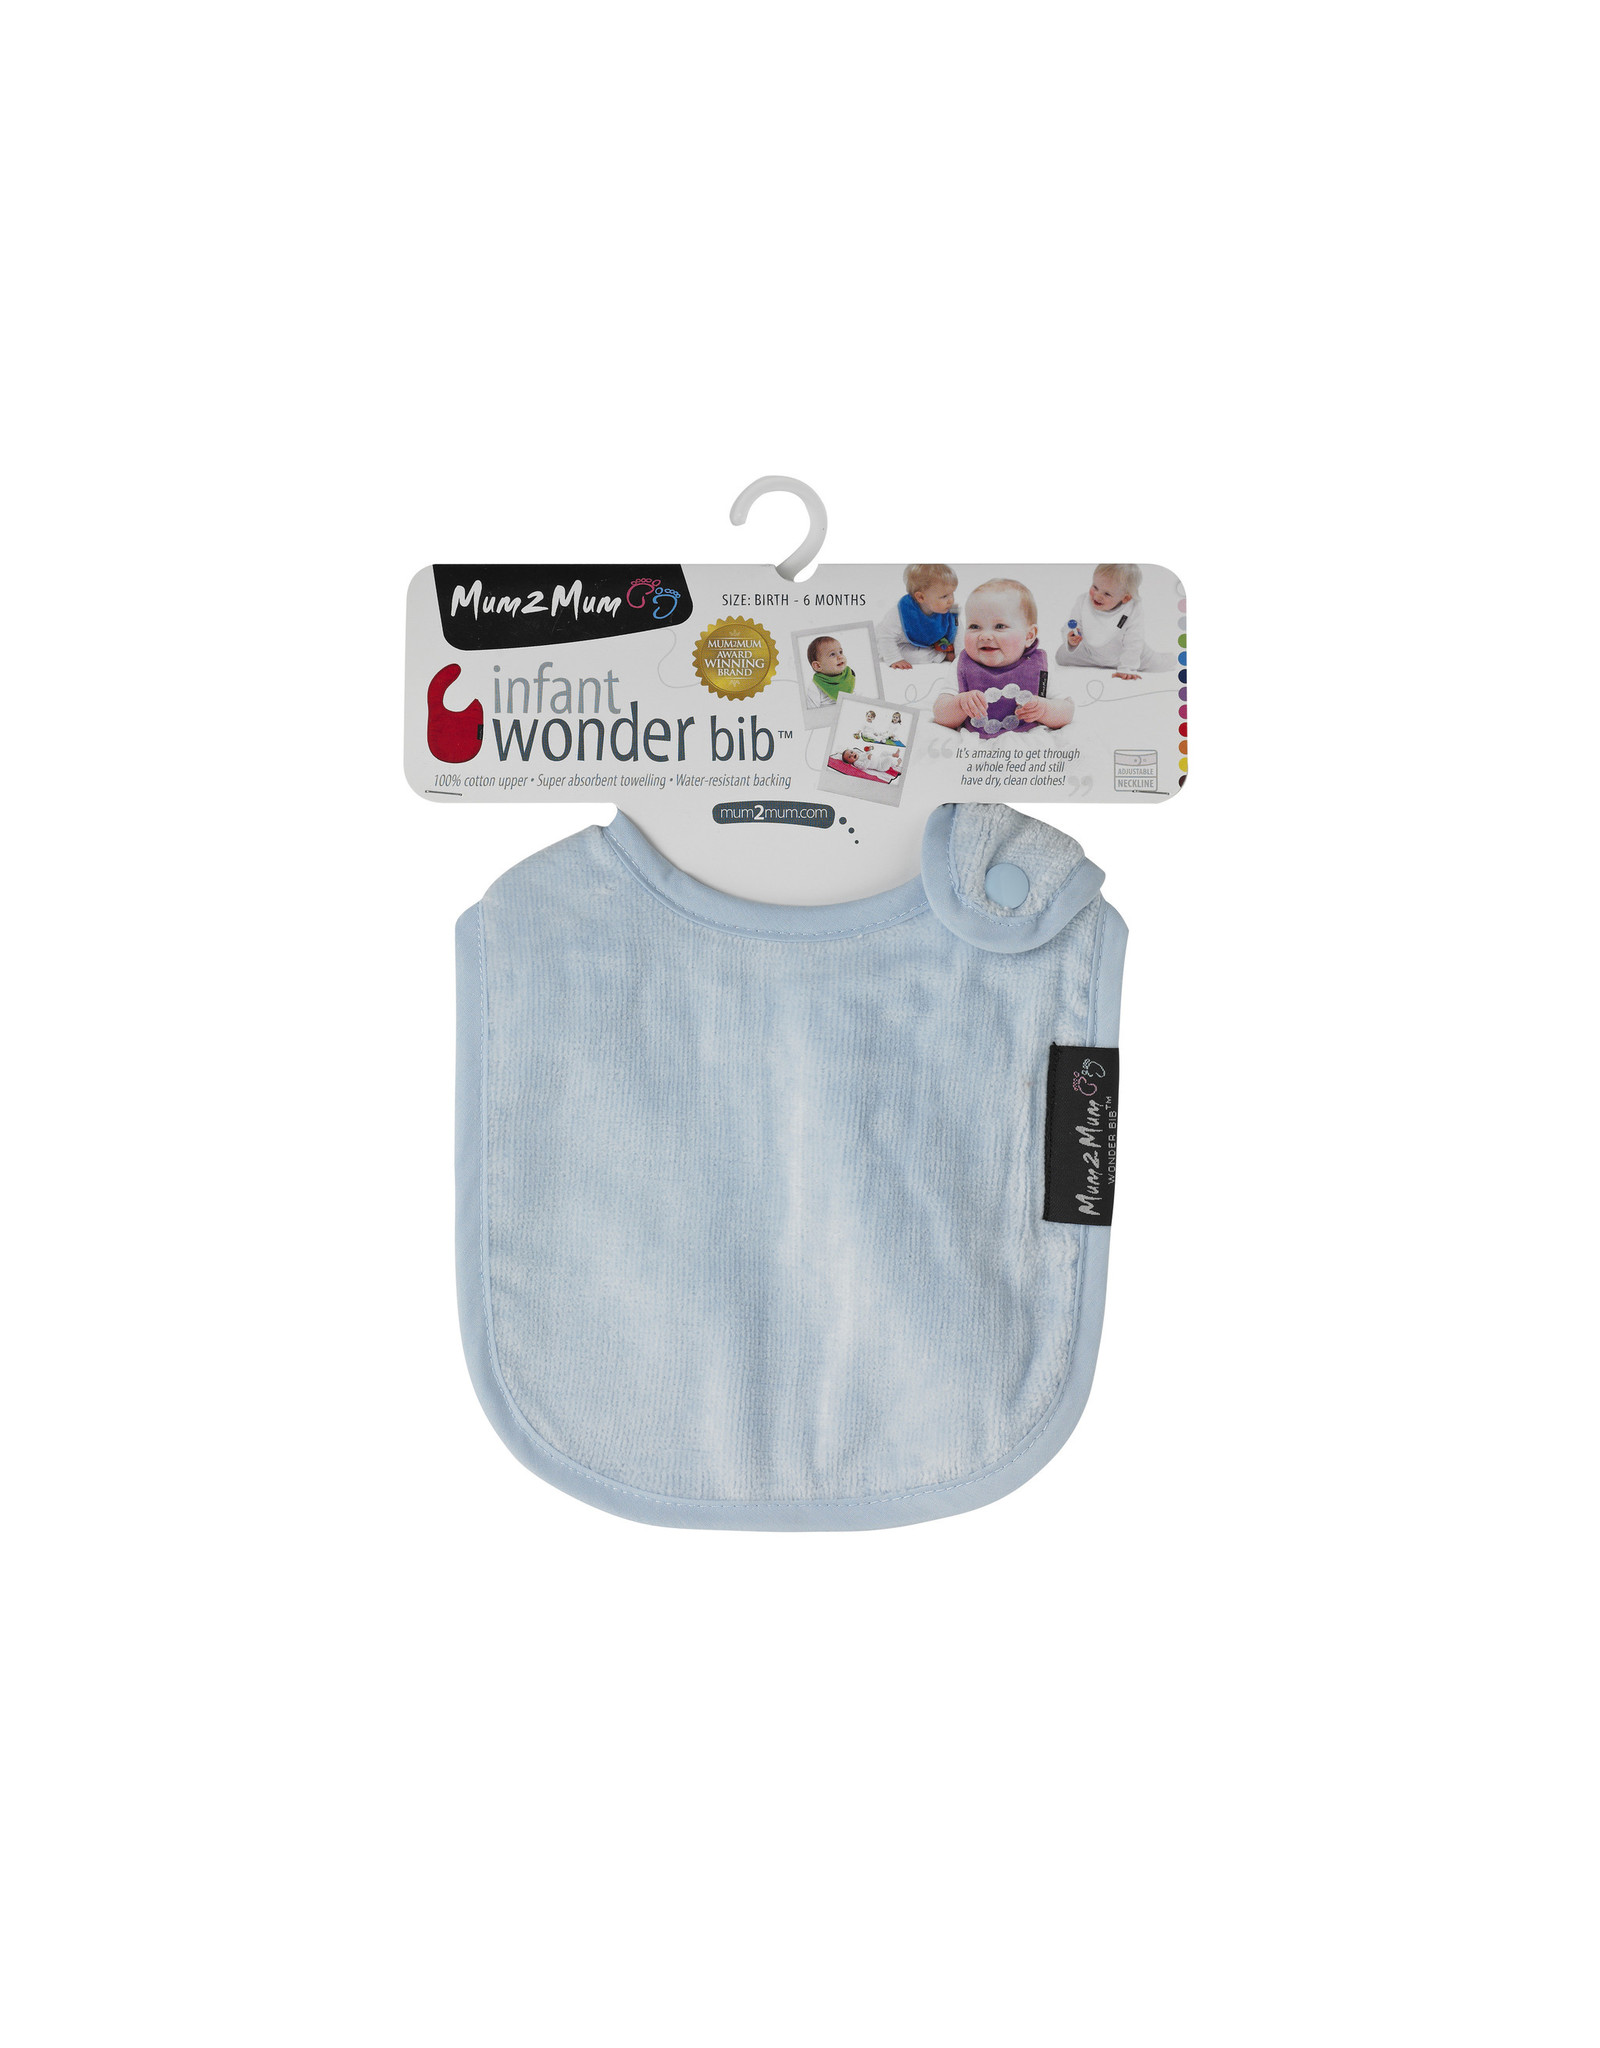 Mum2Mum Mum2Mum Infant Bib Baby Blue 6 pieces